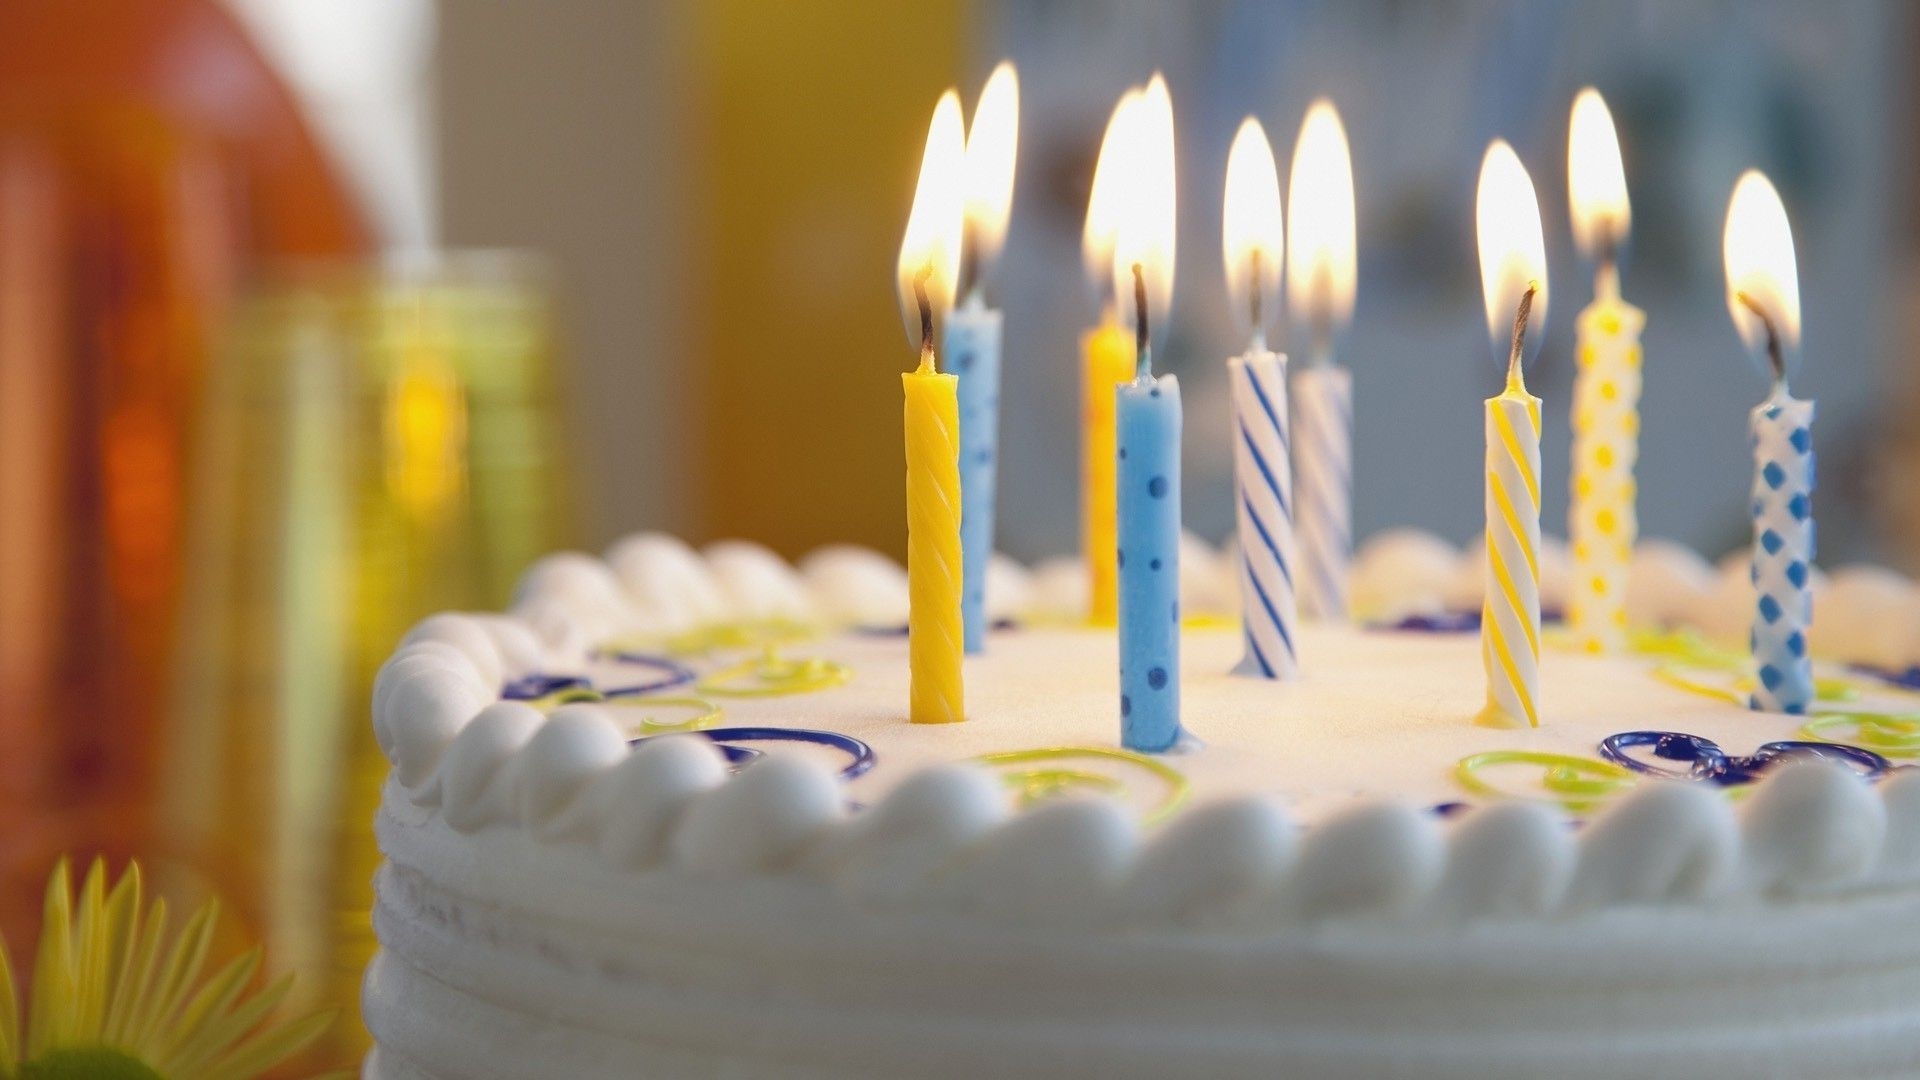 Birthday Cakes Wallpapers Desktop Hd Images 3 Hd Wallpapers